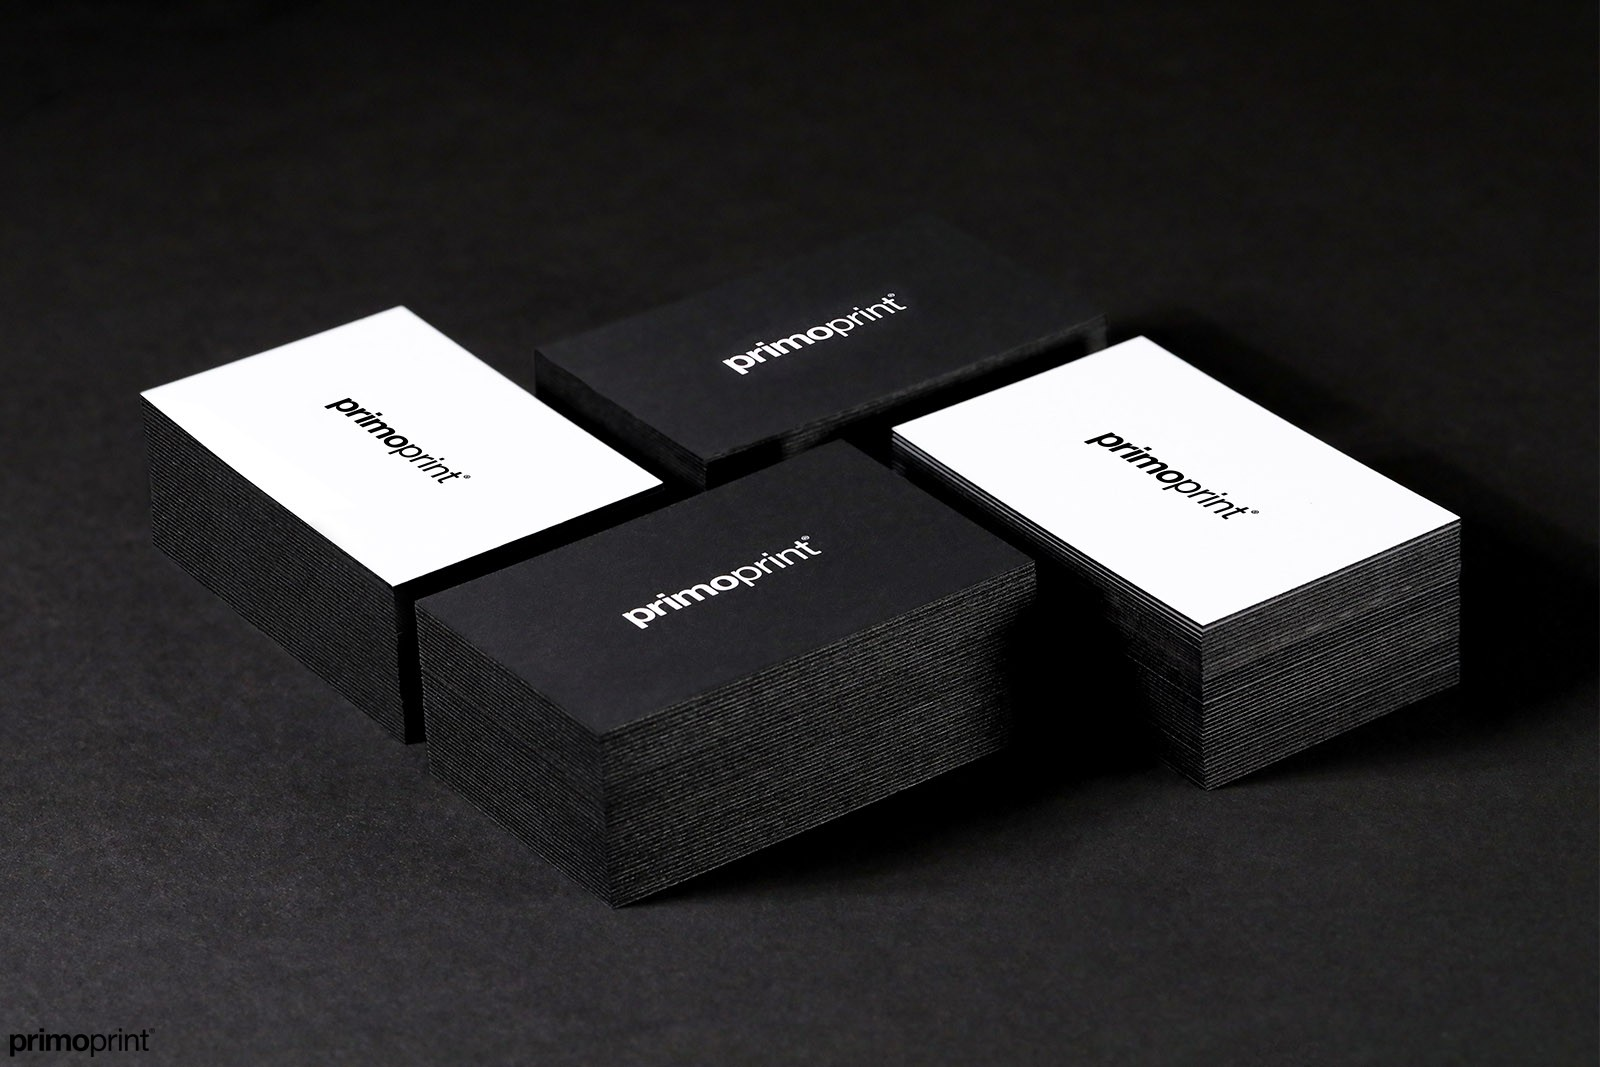 New Black Painted Edge Business Cards.